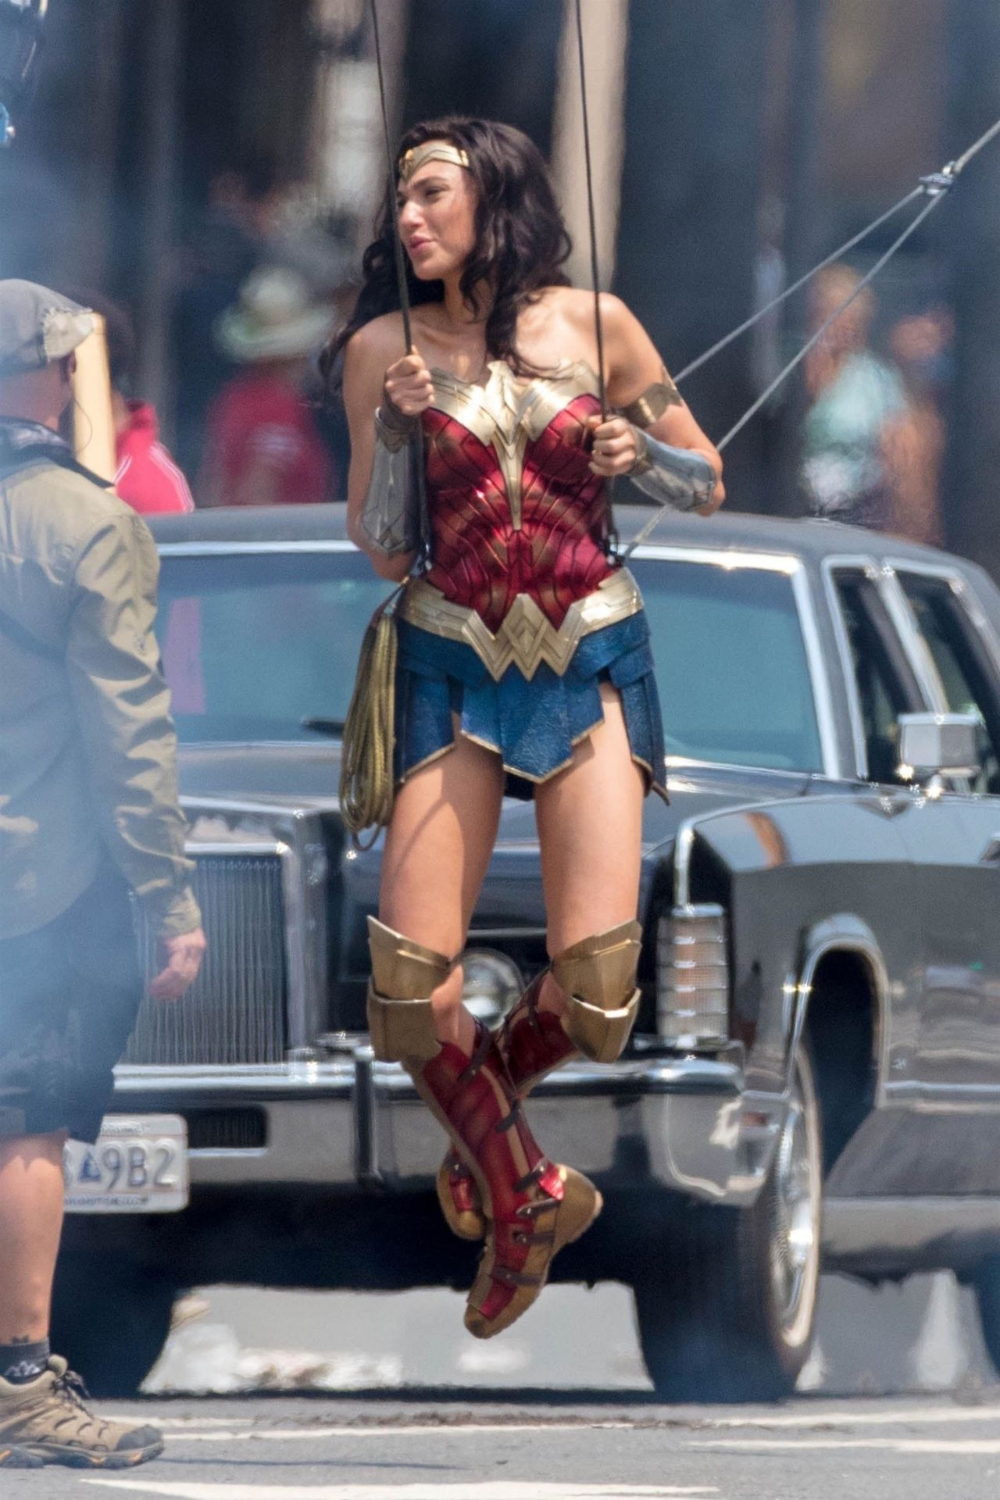 30 Fantastic Wonder Woman 1984 Behind The Scenes Photos That Will Make Fans Fall In Love With Her Again Gal Gadot Wonder Woman Wonder Woman Movie Wonder Woman